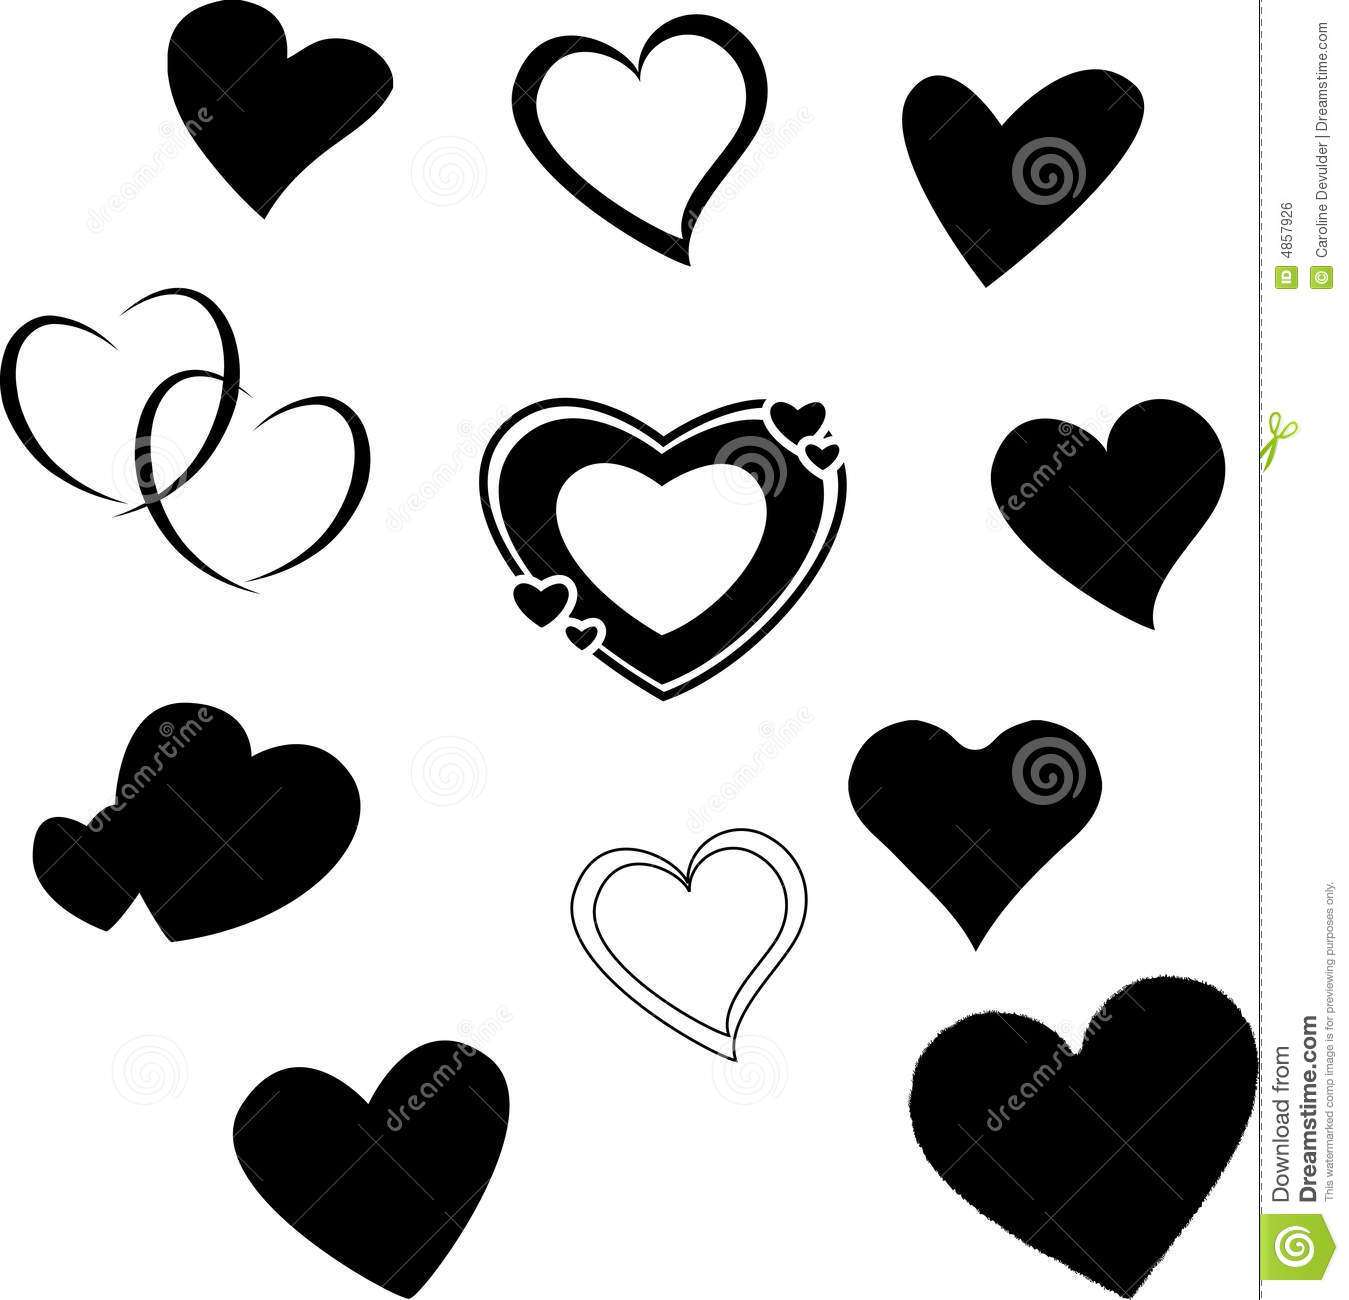 Heart Silhouettes Royalty Free Stock Image - Image: 4857926